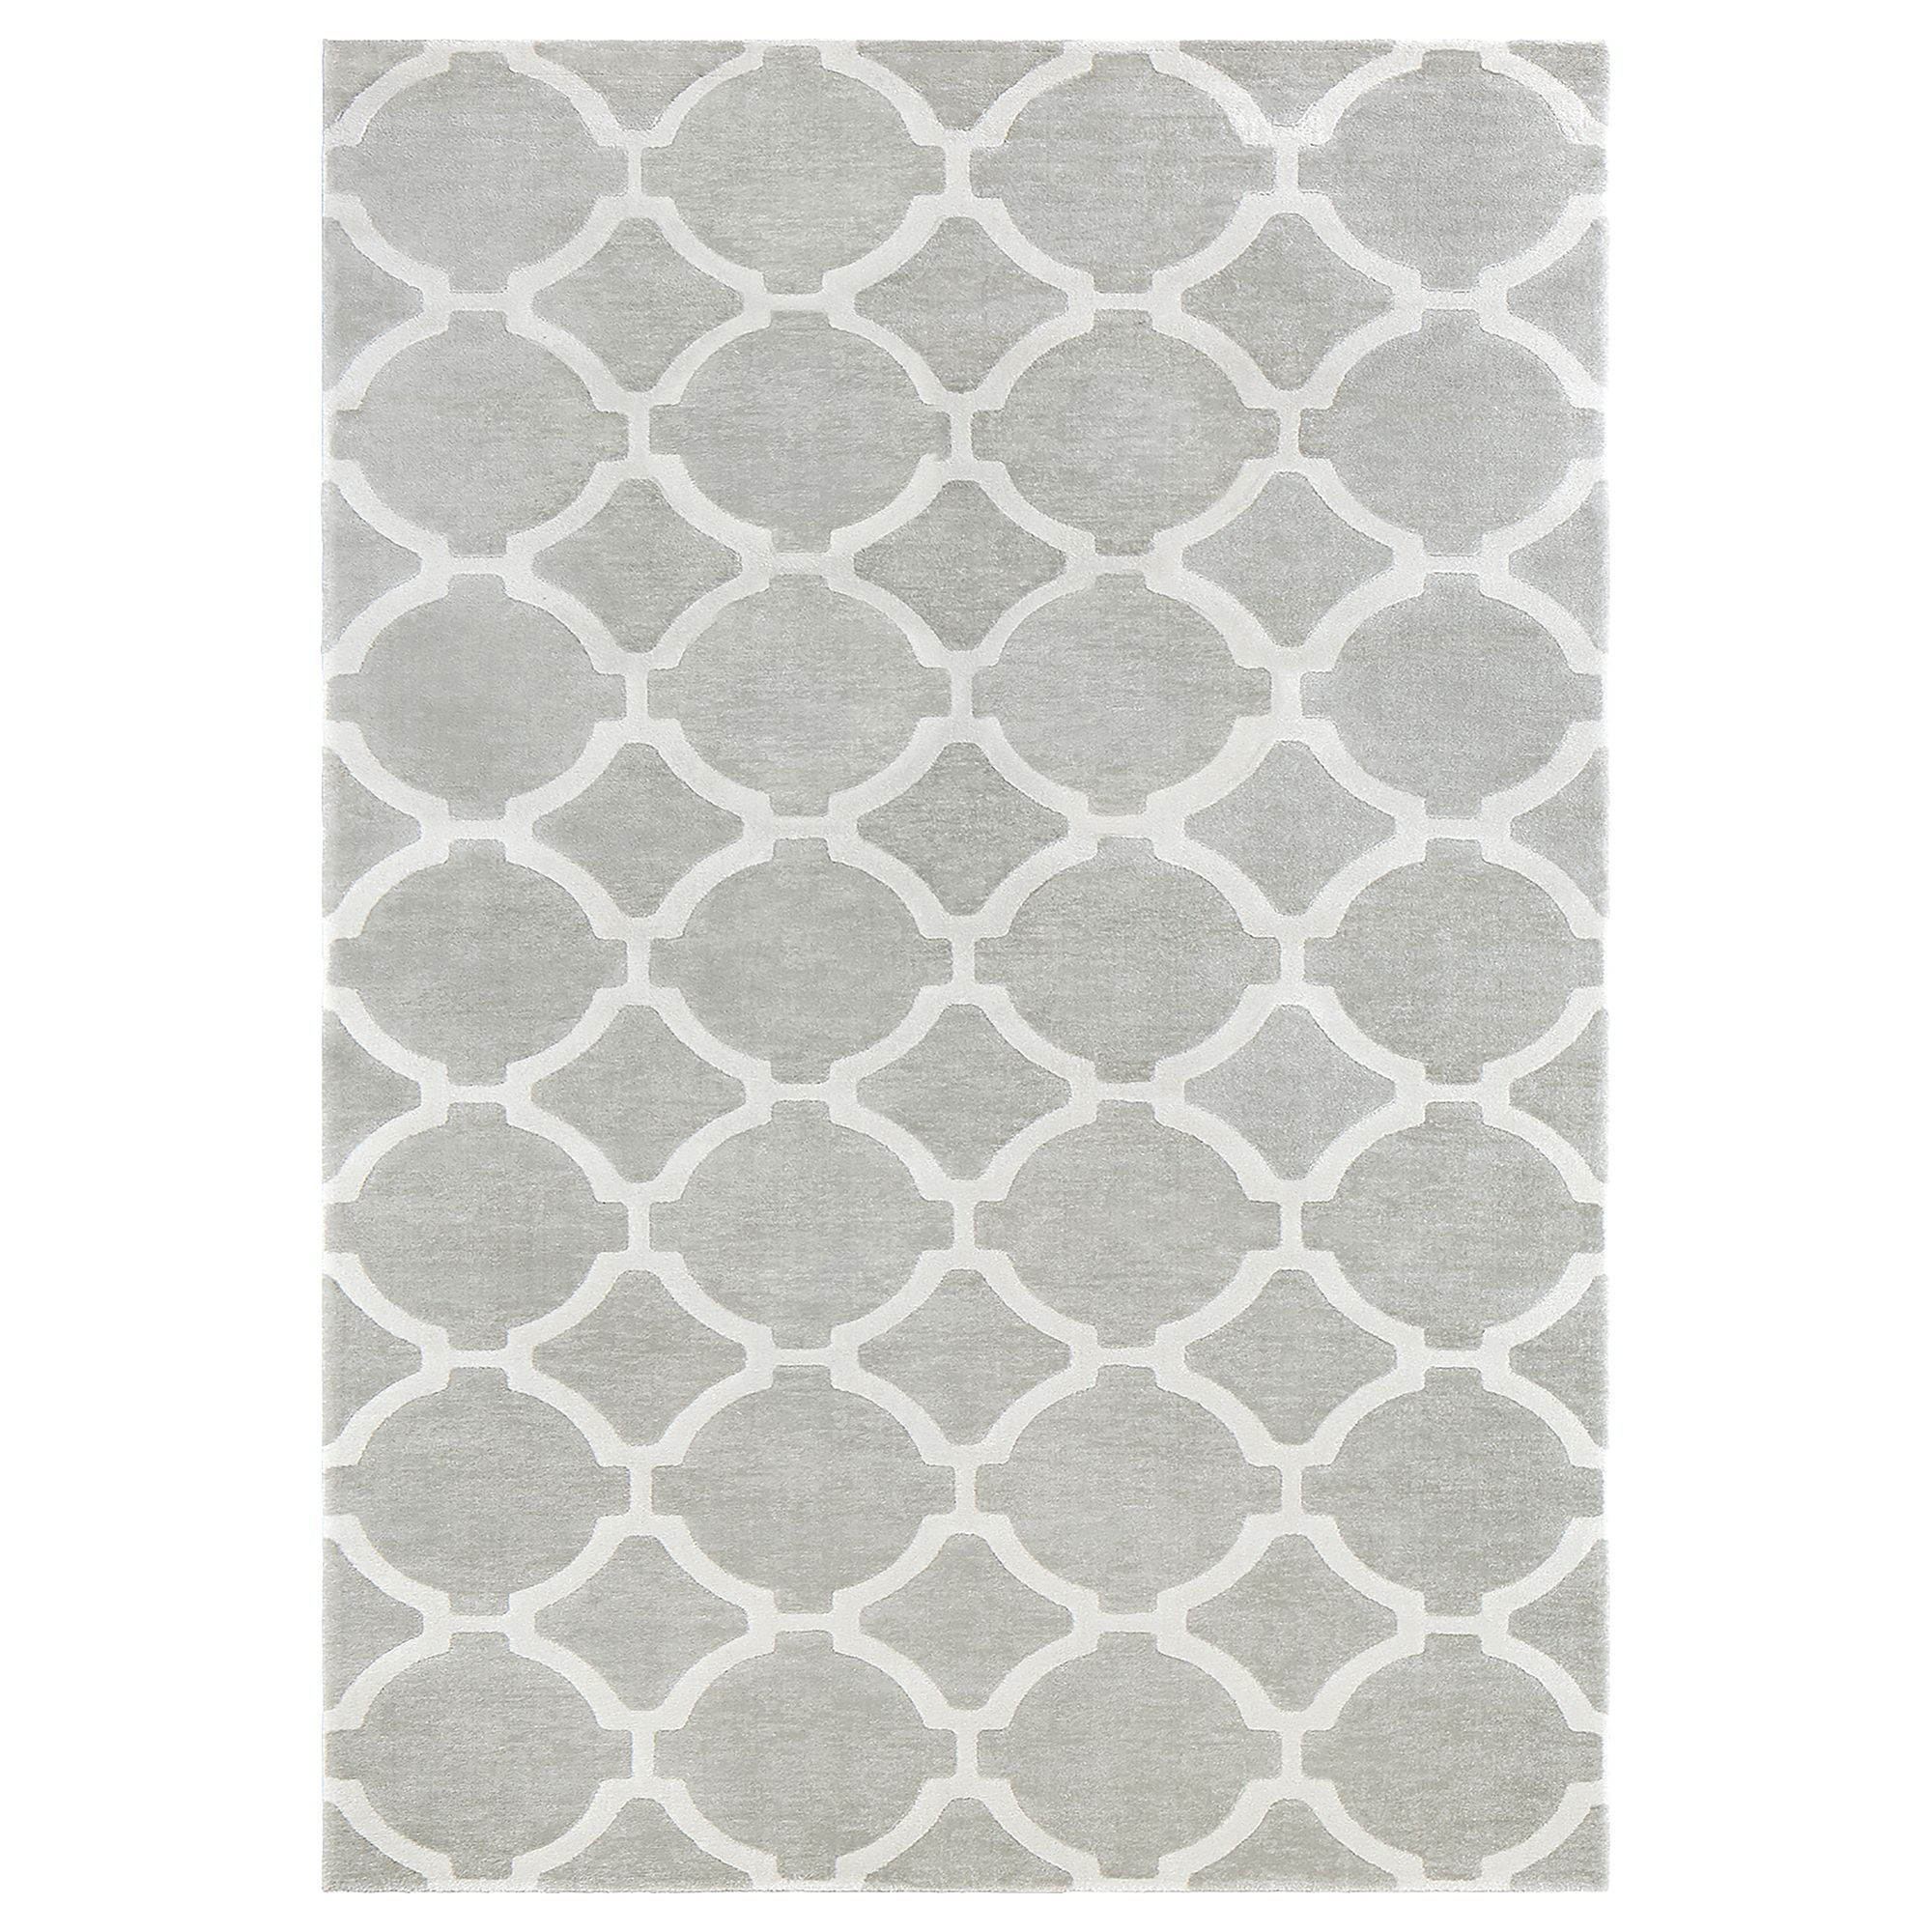 Ikea Hillested Rug Low Pile Gray White In 2019